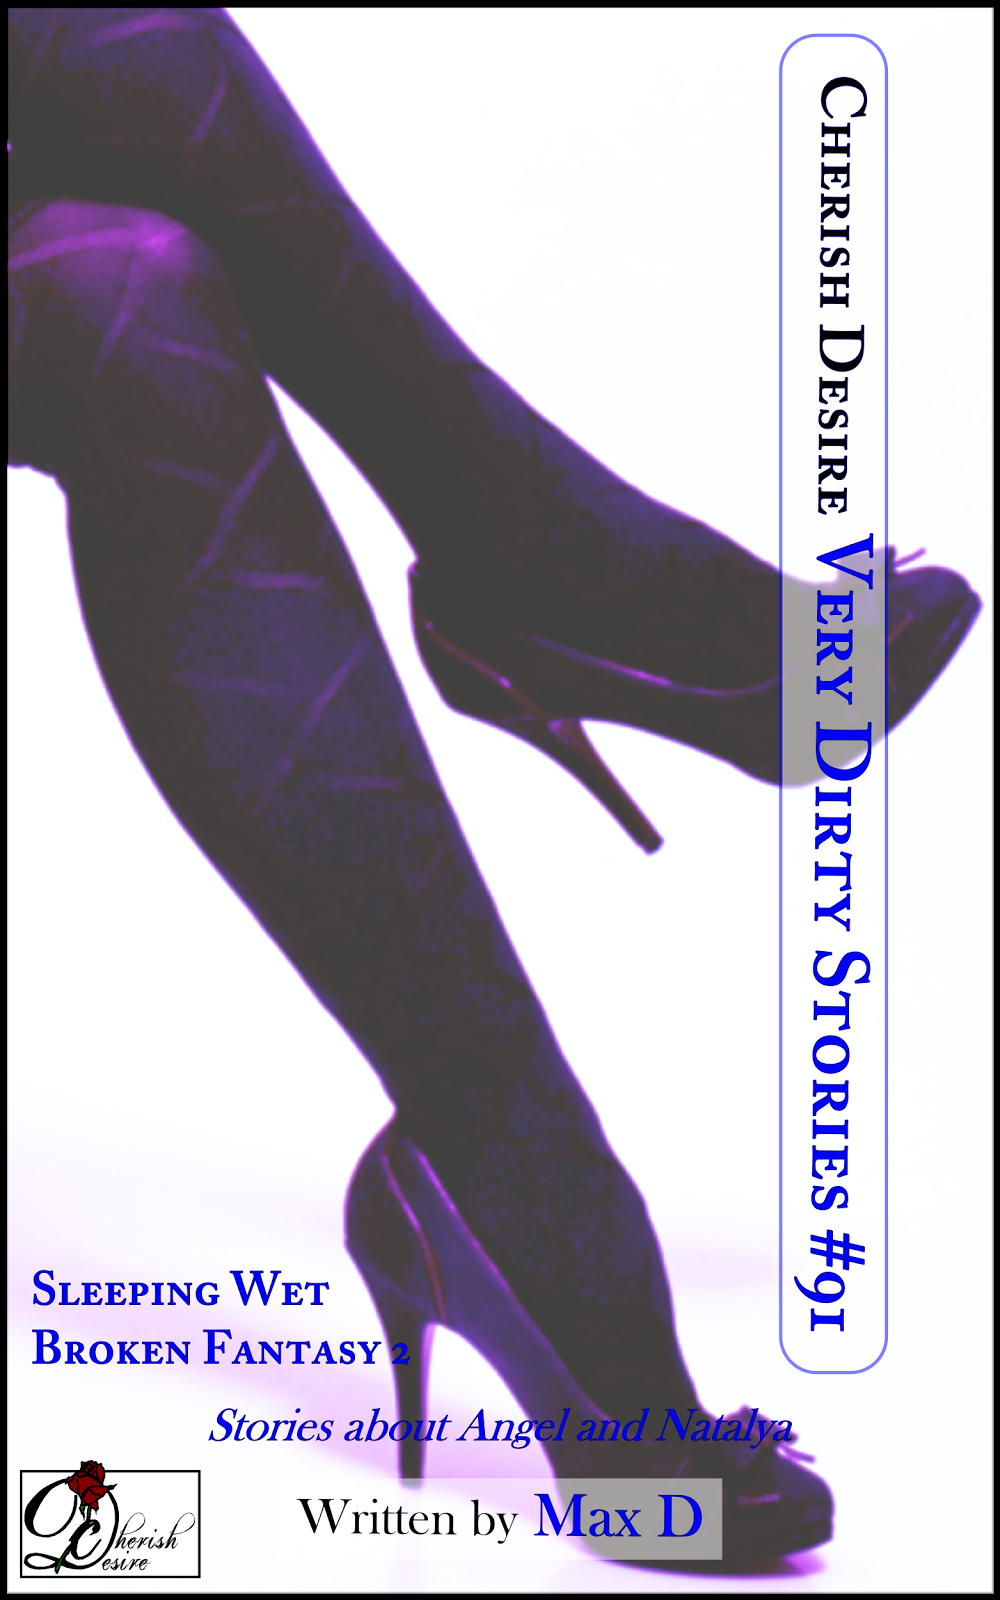 Cherish Desire: Very Dirty Stories #91, Max D, erotica